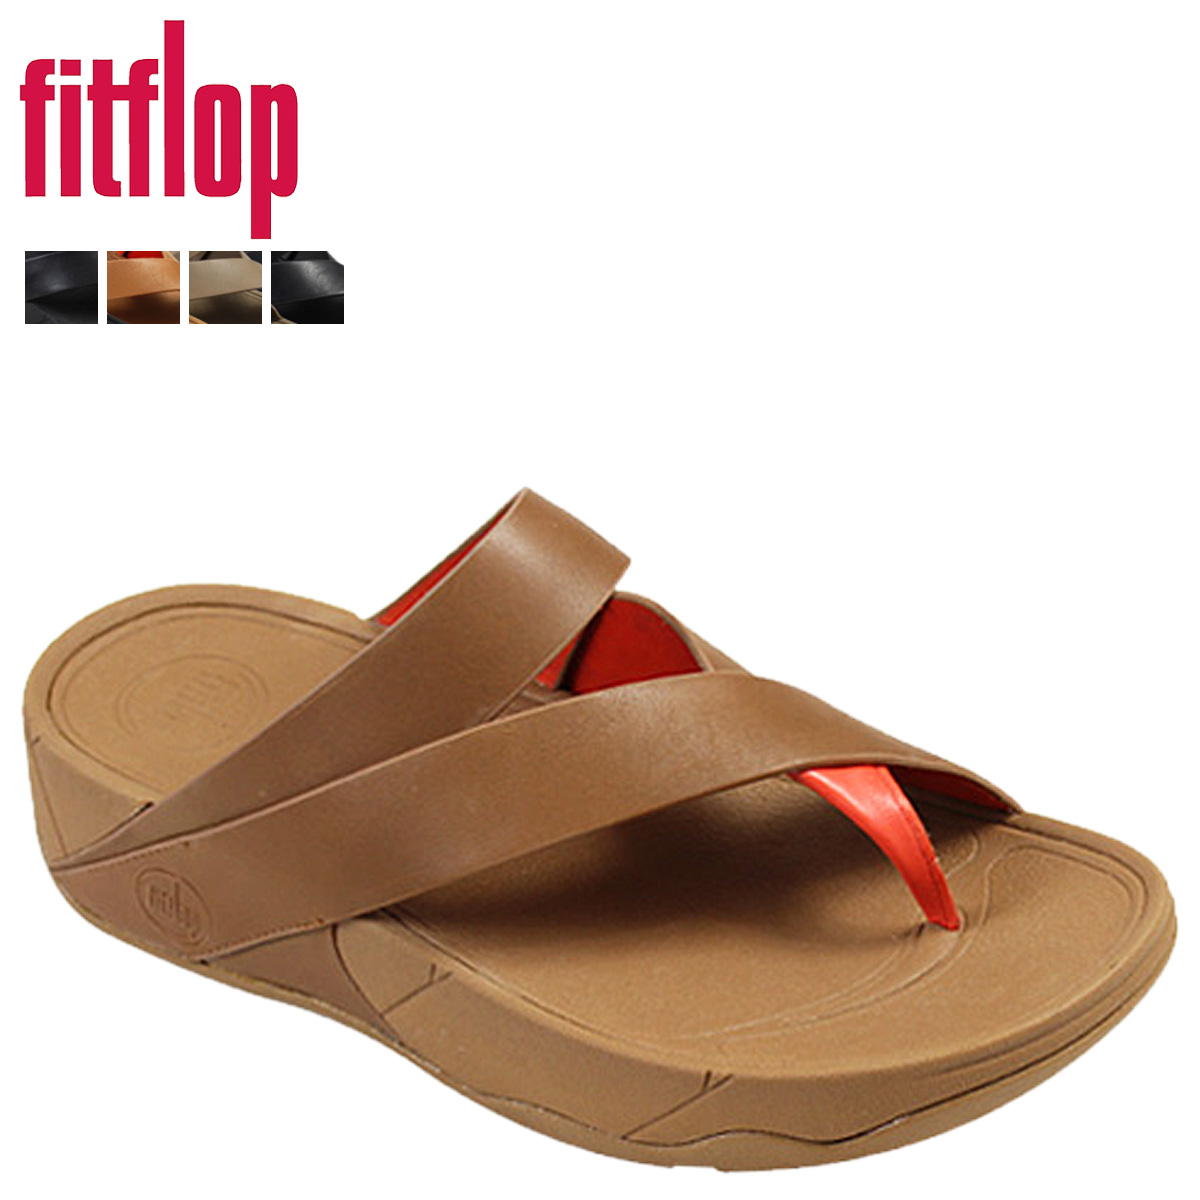 60b816fe867 ... mounted the first fit flop sandals. This is a new generation footwear  brand revolutionized the modern shoe industry does not understand the  benefits of ...